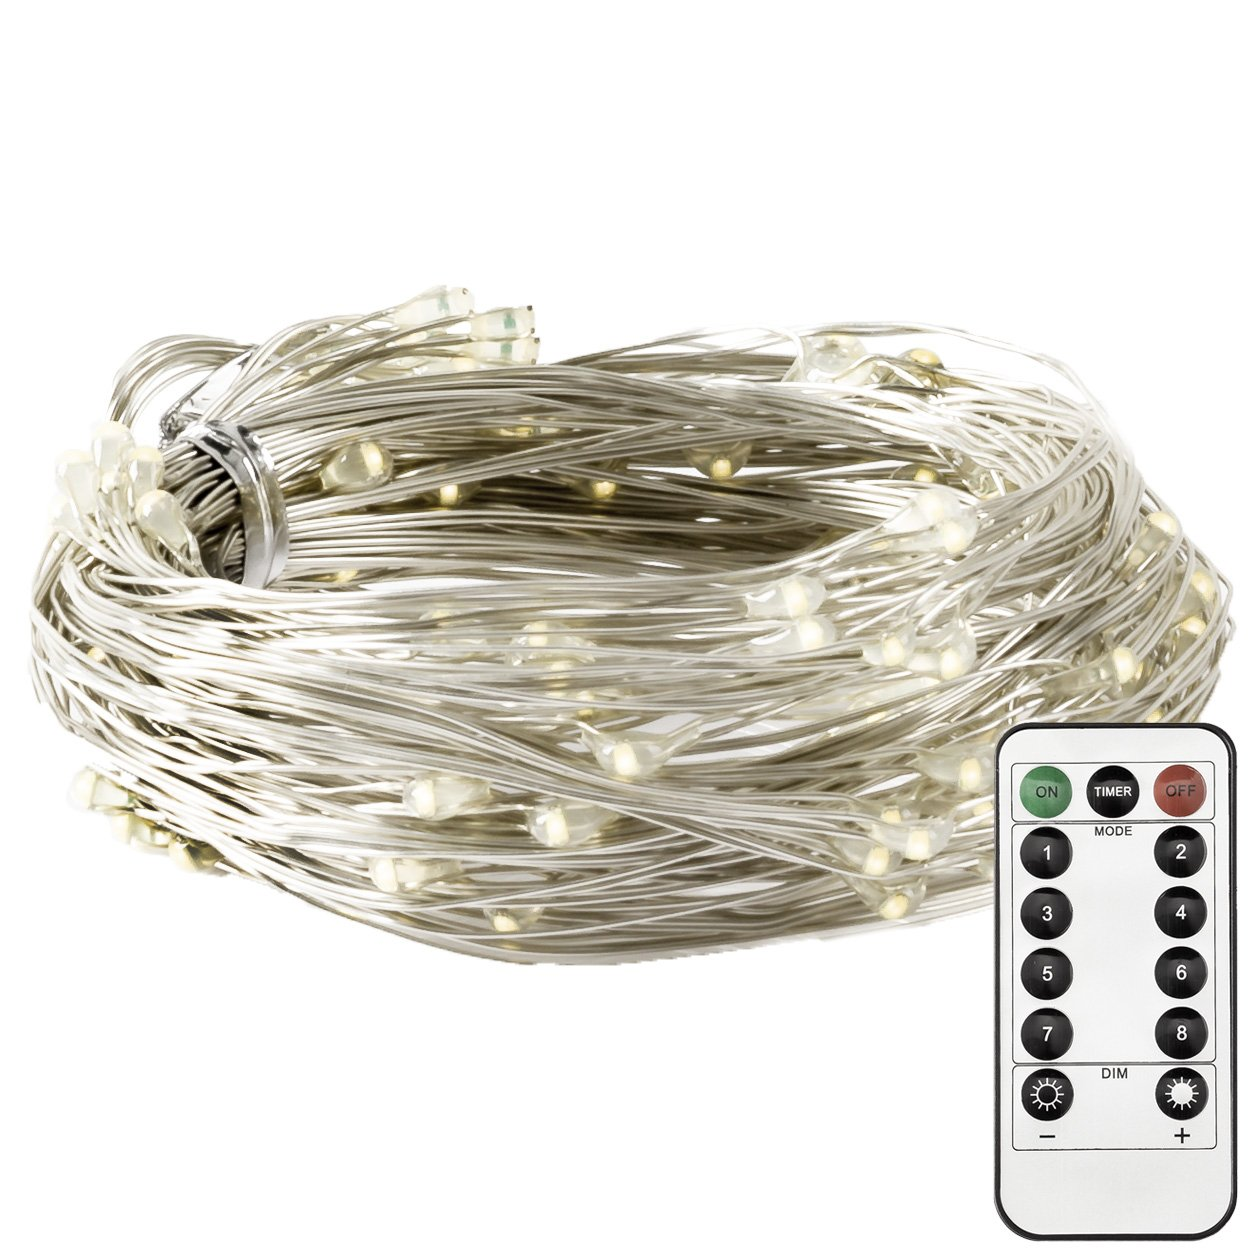 Otimo 2 Meters 120LED Starry Fairy String Lights with 8 Modes, Multi-Colored Fairy Light, Battery Powered